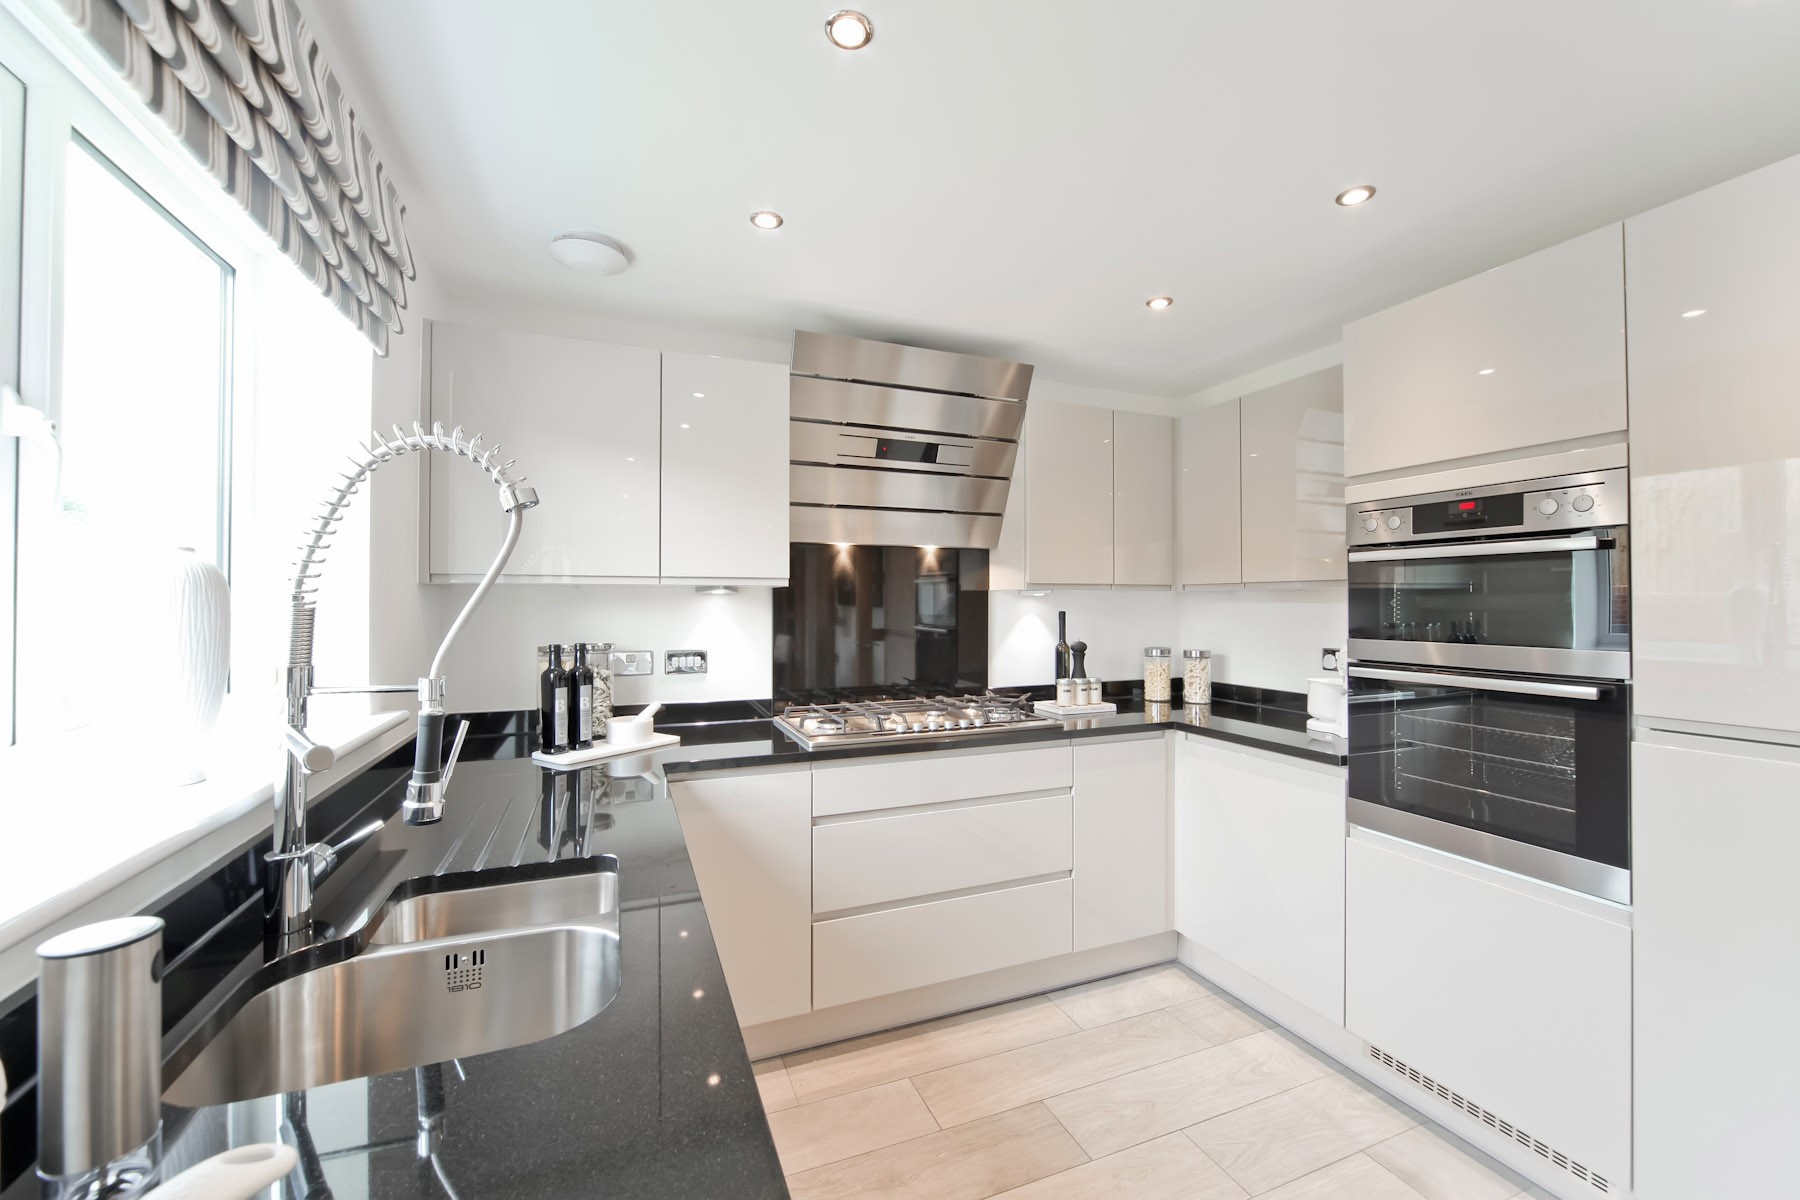 009_BH_Downham_Kitchen